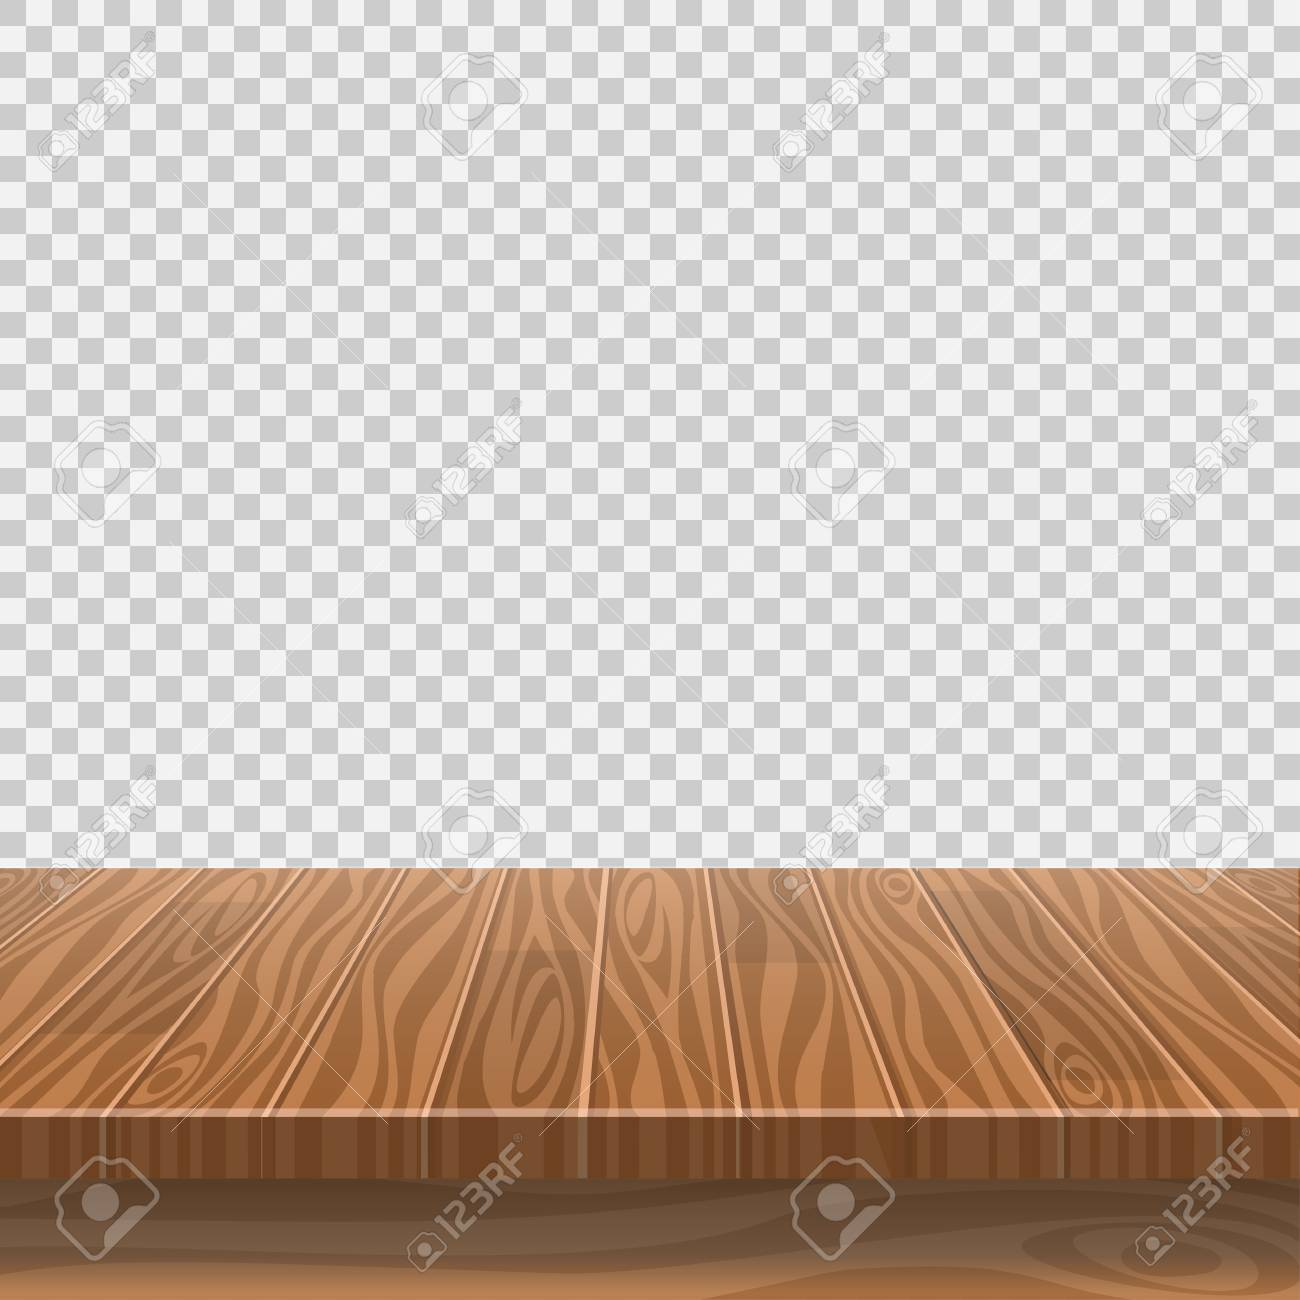 Empty wooden table for product placement or montage with focus to the table top, with isolated white background. Vector illustration - 126304073